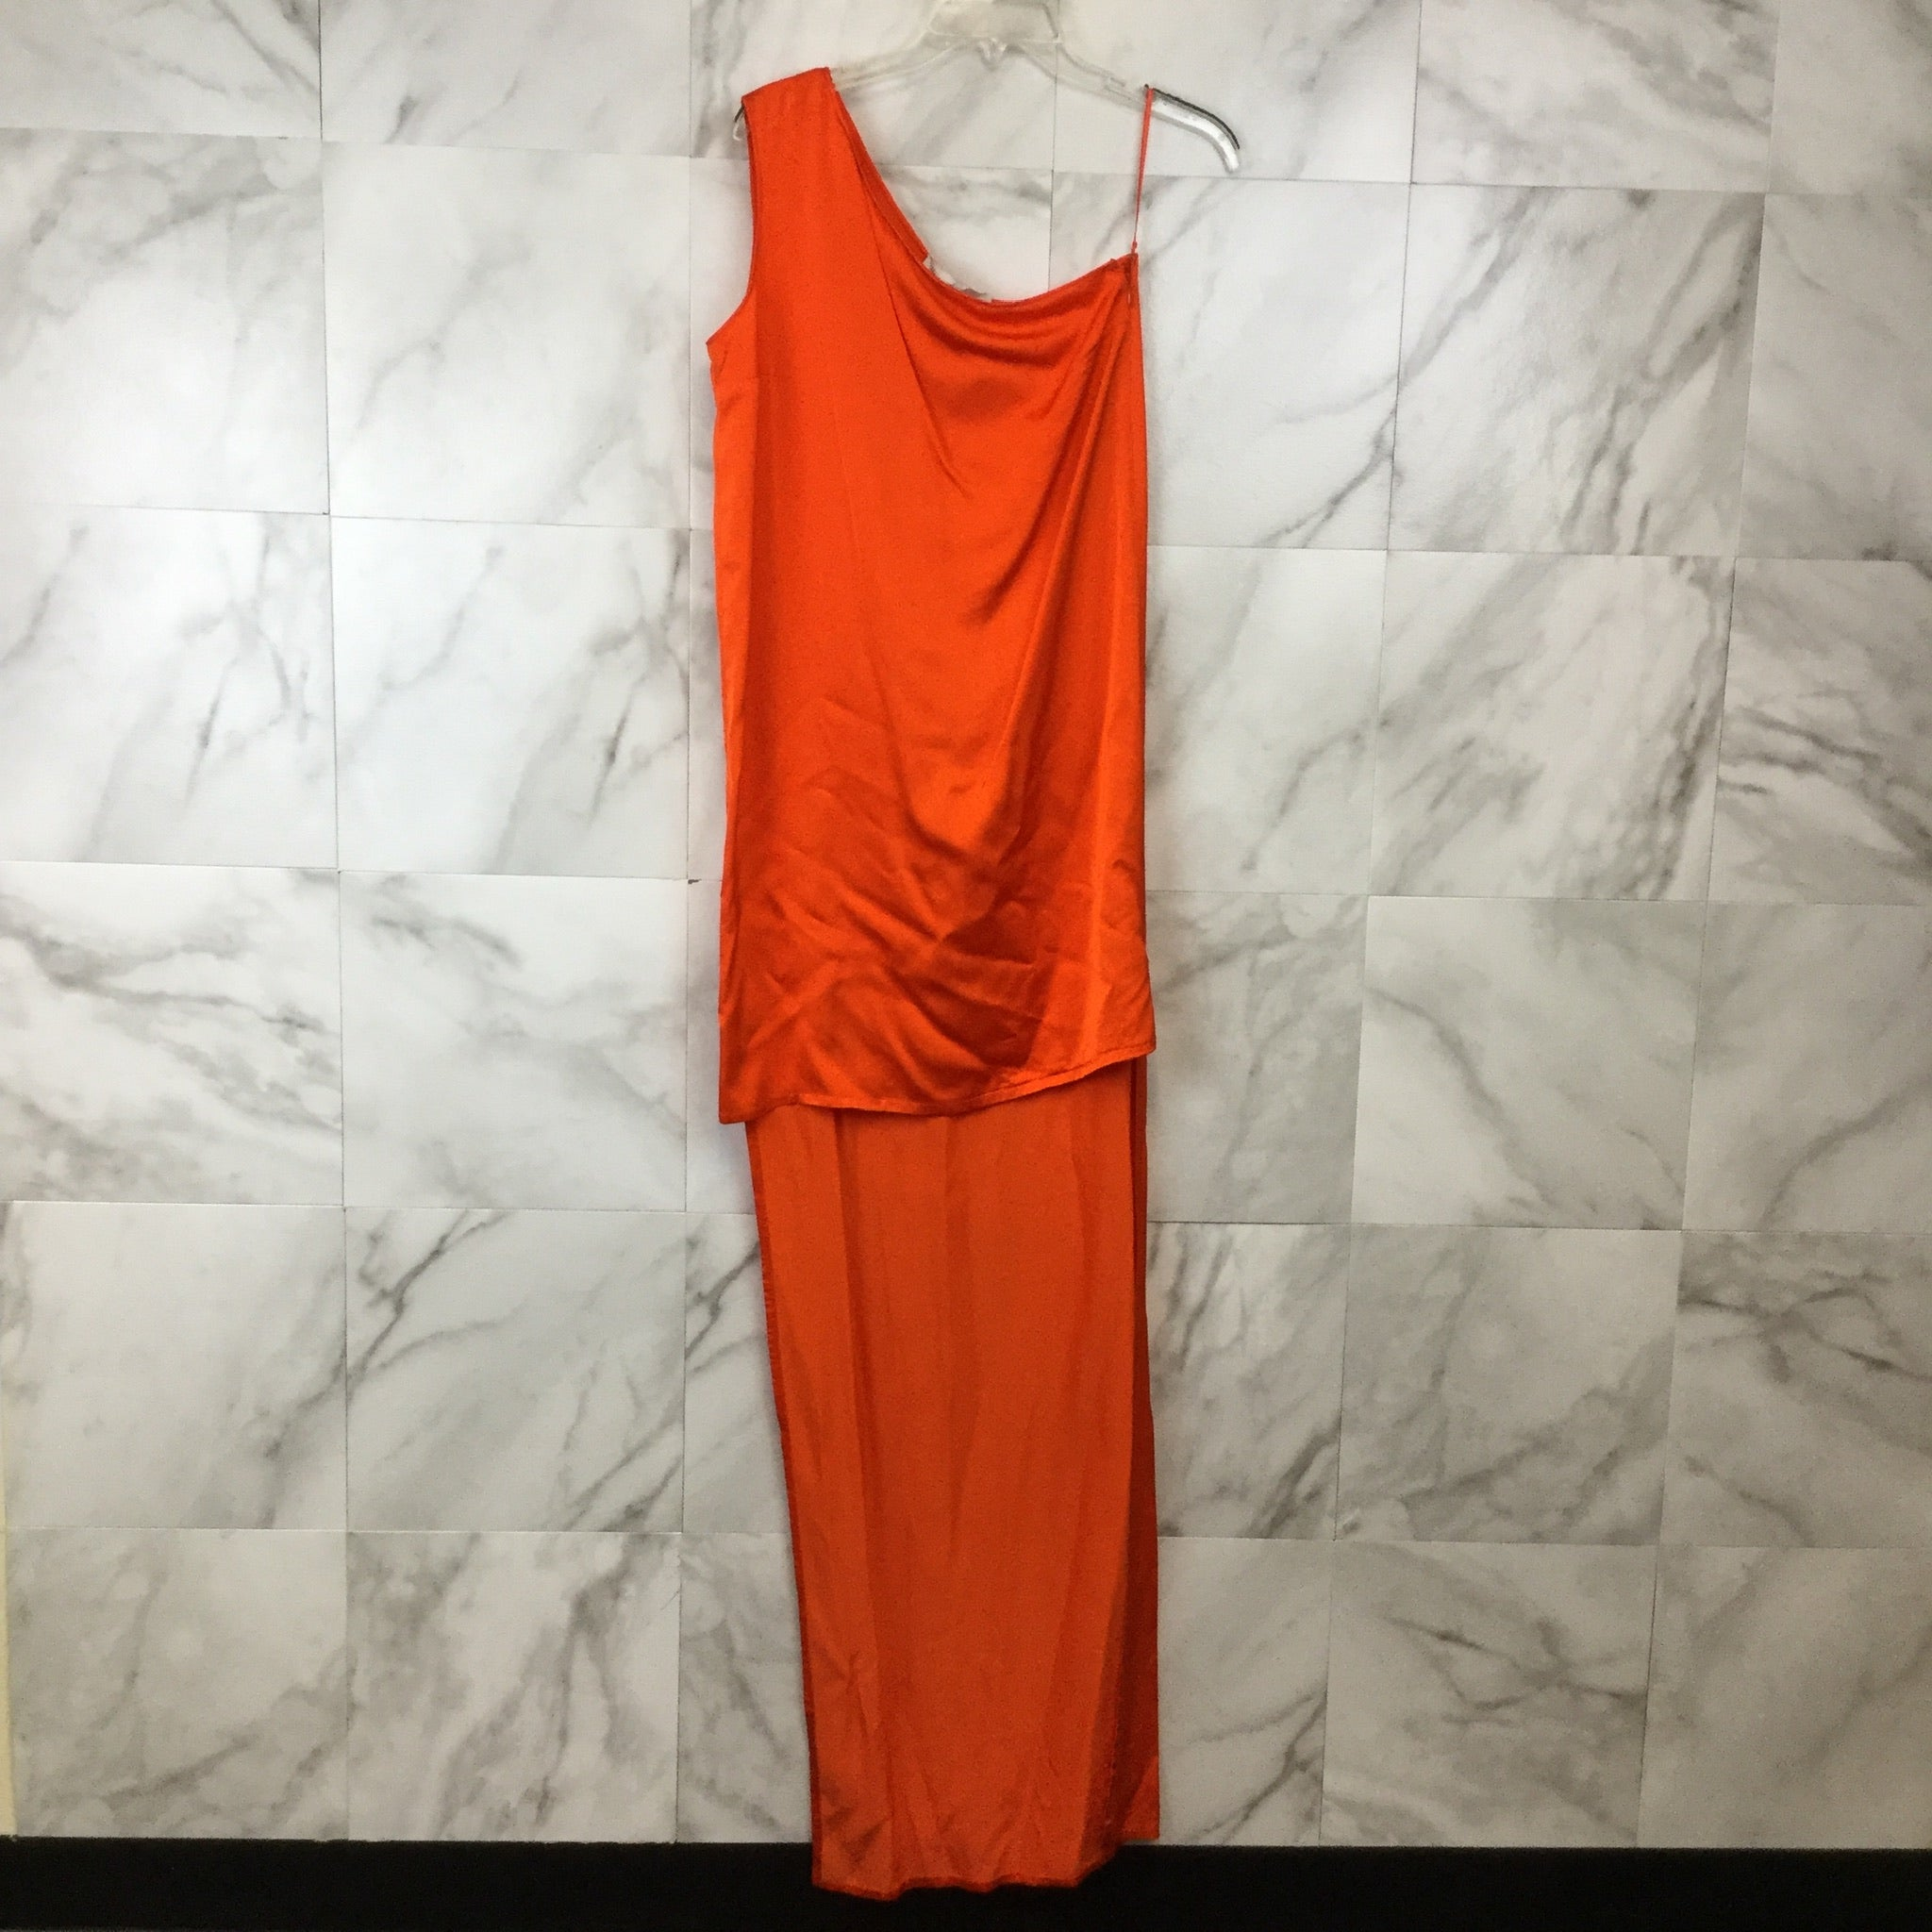 Stella McCartney One Shoulder High-Low Dress - 42